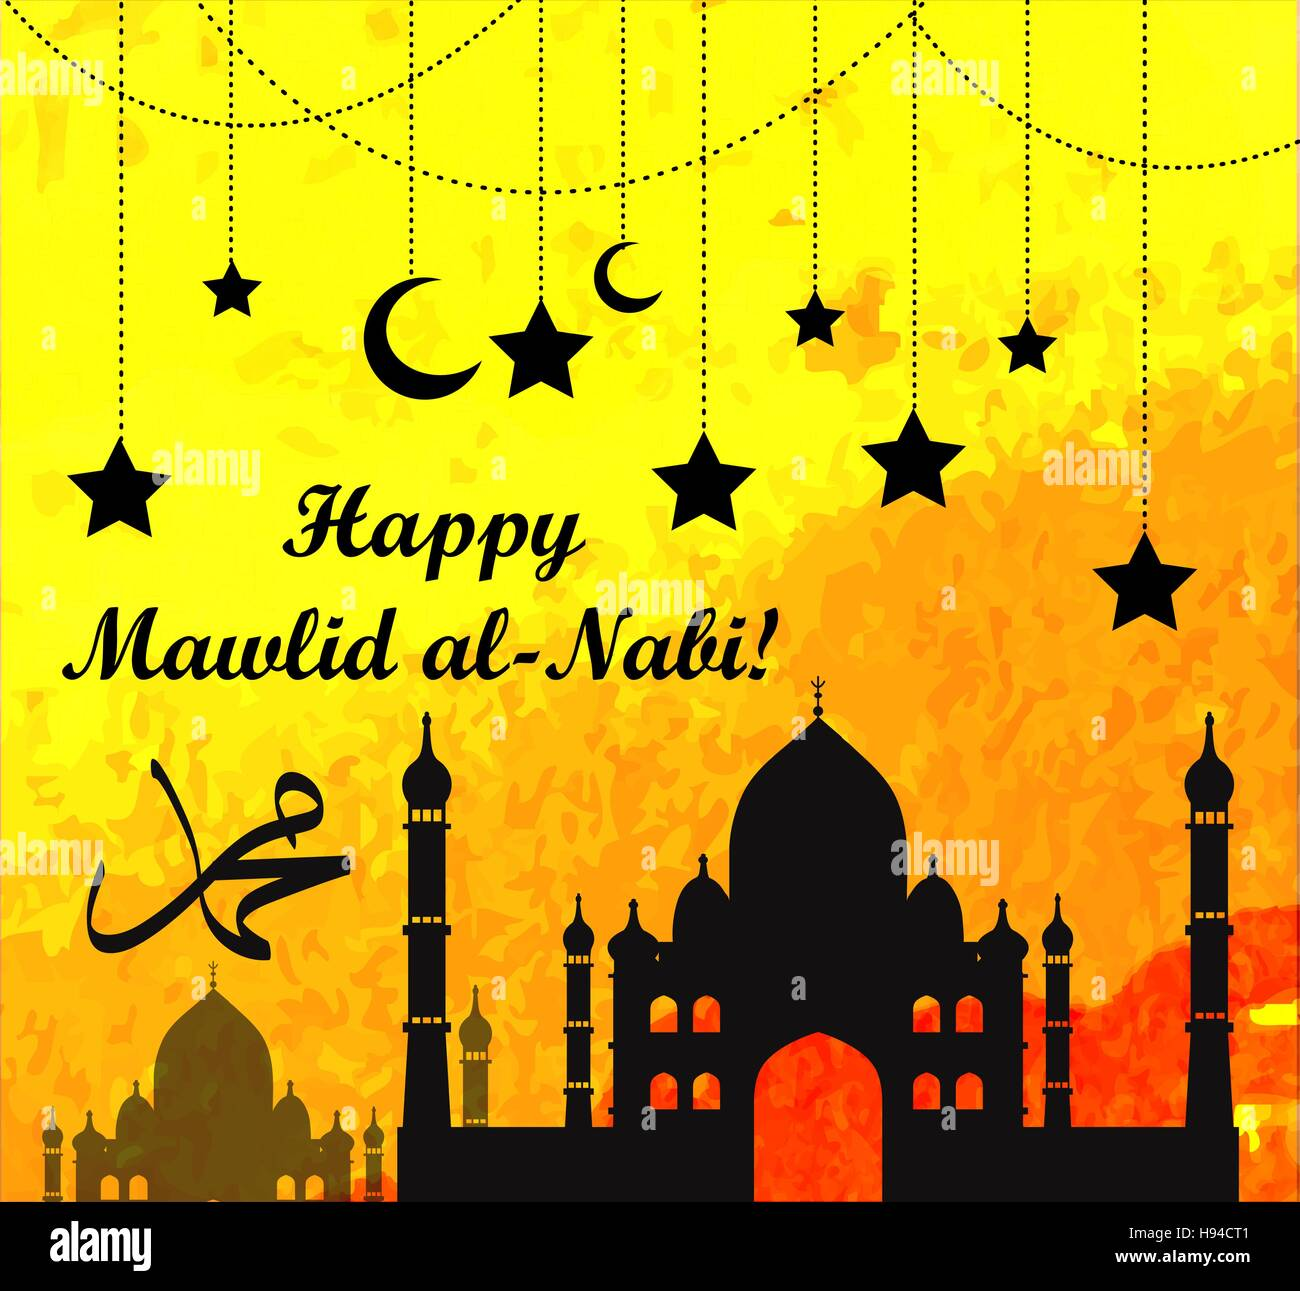 Mawlid al nabi the birthday of the prophet muhammad greeting card mawlid al nabi the birthday of the prophet muhammad greeting card muslim celebration poster flyer vector illustration m4hsunfo